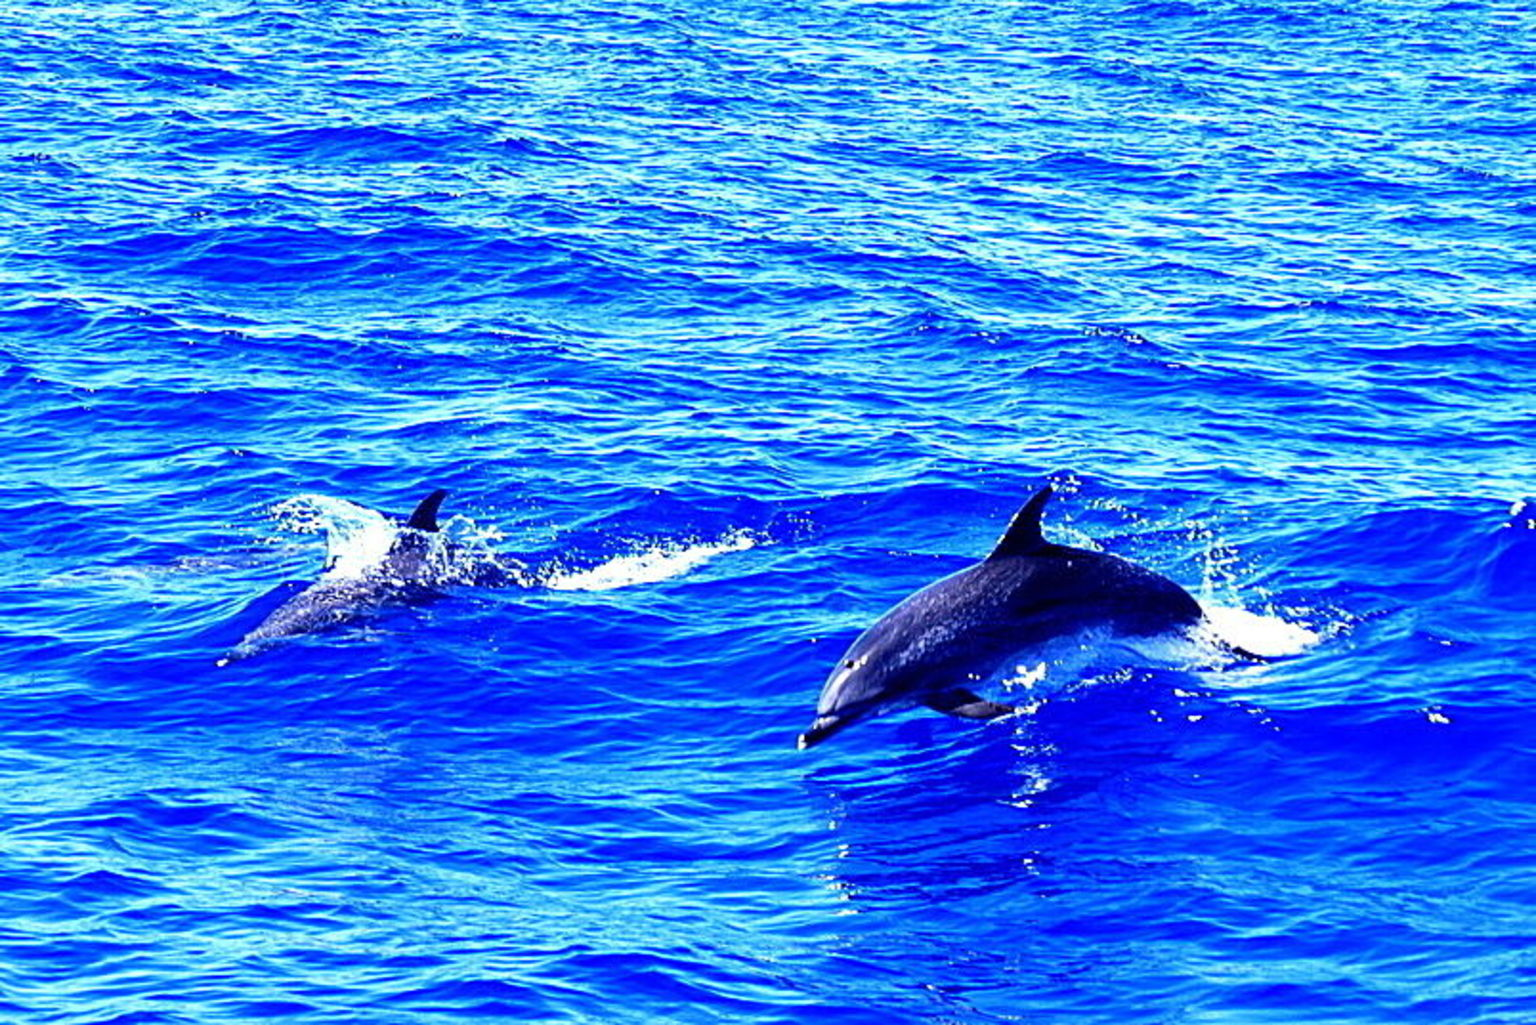 MORE PHOTOS, Madeira Dolphin and Whale Watching on a Luxurious Catamaran